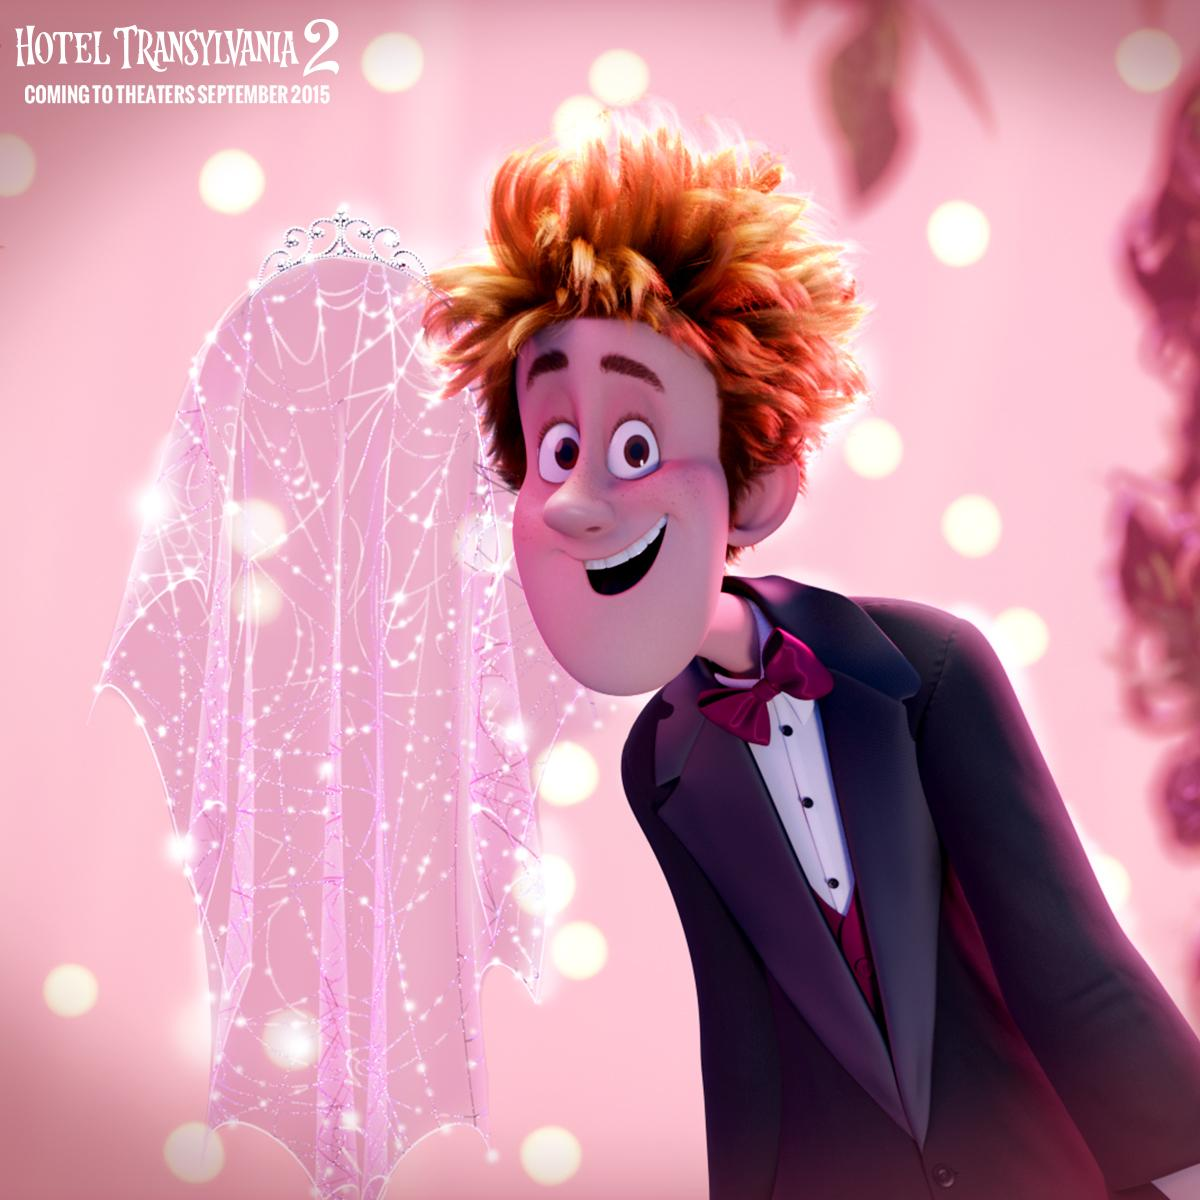 Hotel Transylvania On Twitter VD2013 Yeah Were Married And The Wedding Was AWESOME Those Monsters Know How To Party